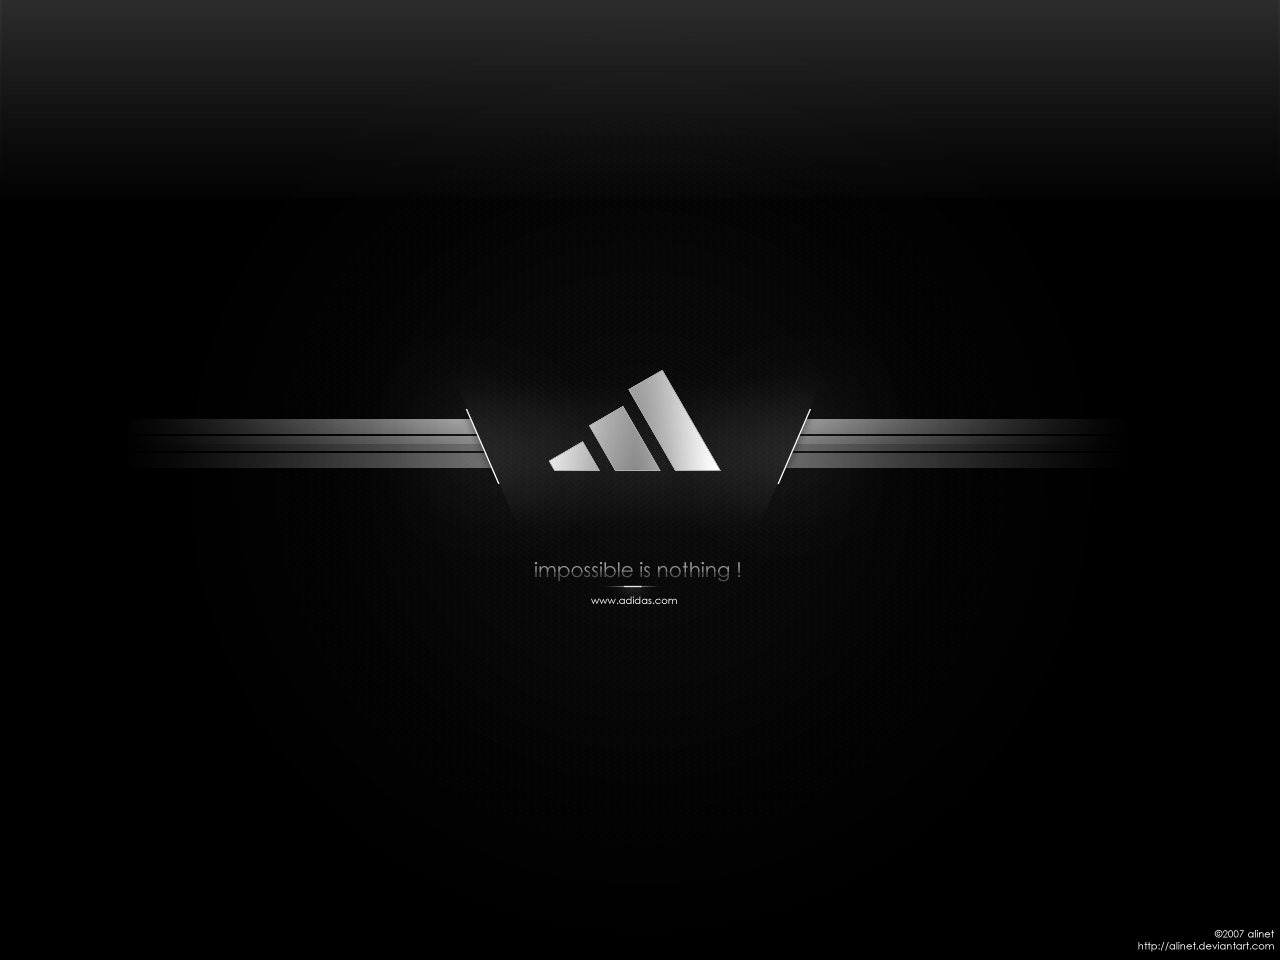 77+] Logo Adidas Wallpaper on WallpaperSafari